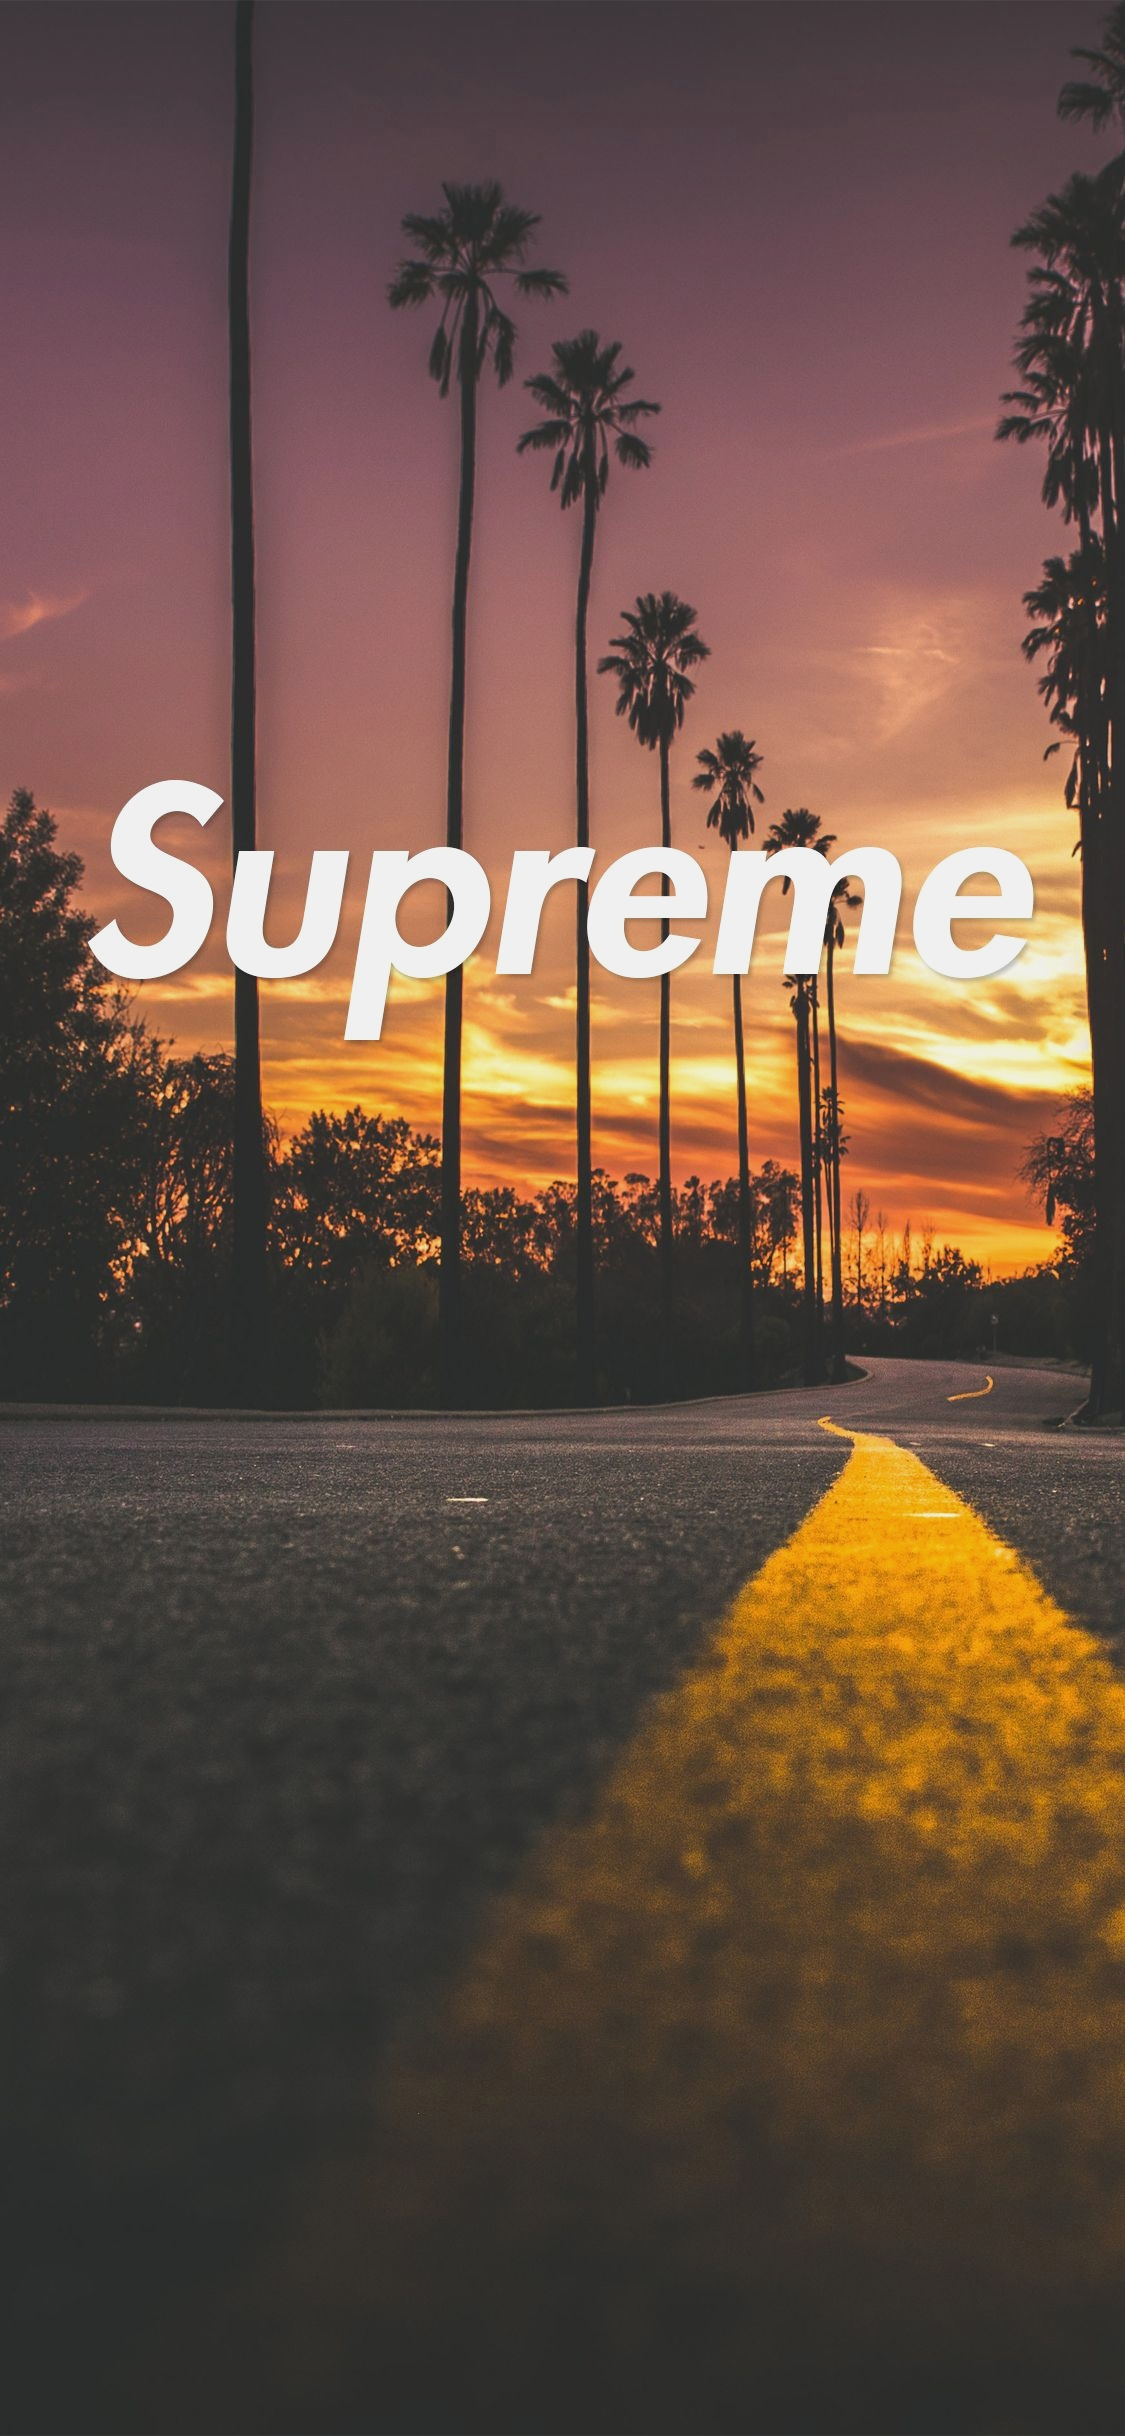 Free Download Supreme Cool Wallpaper Iphone Cute Cool For